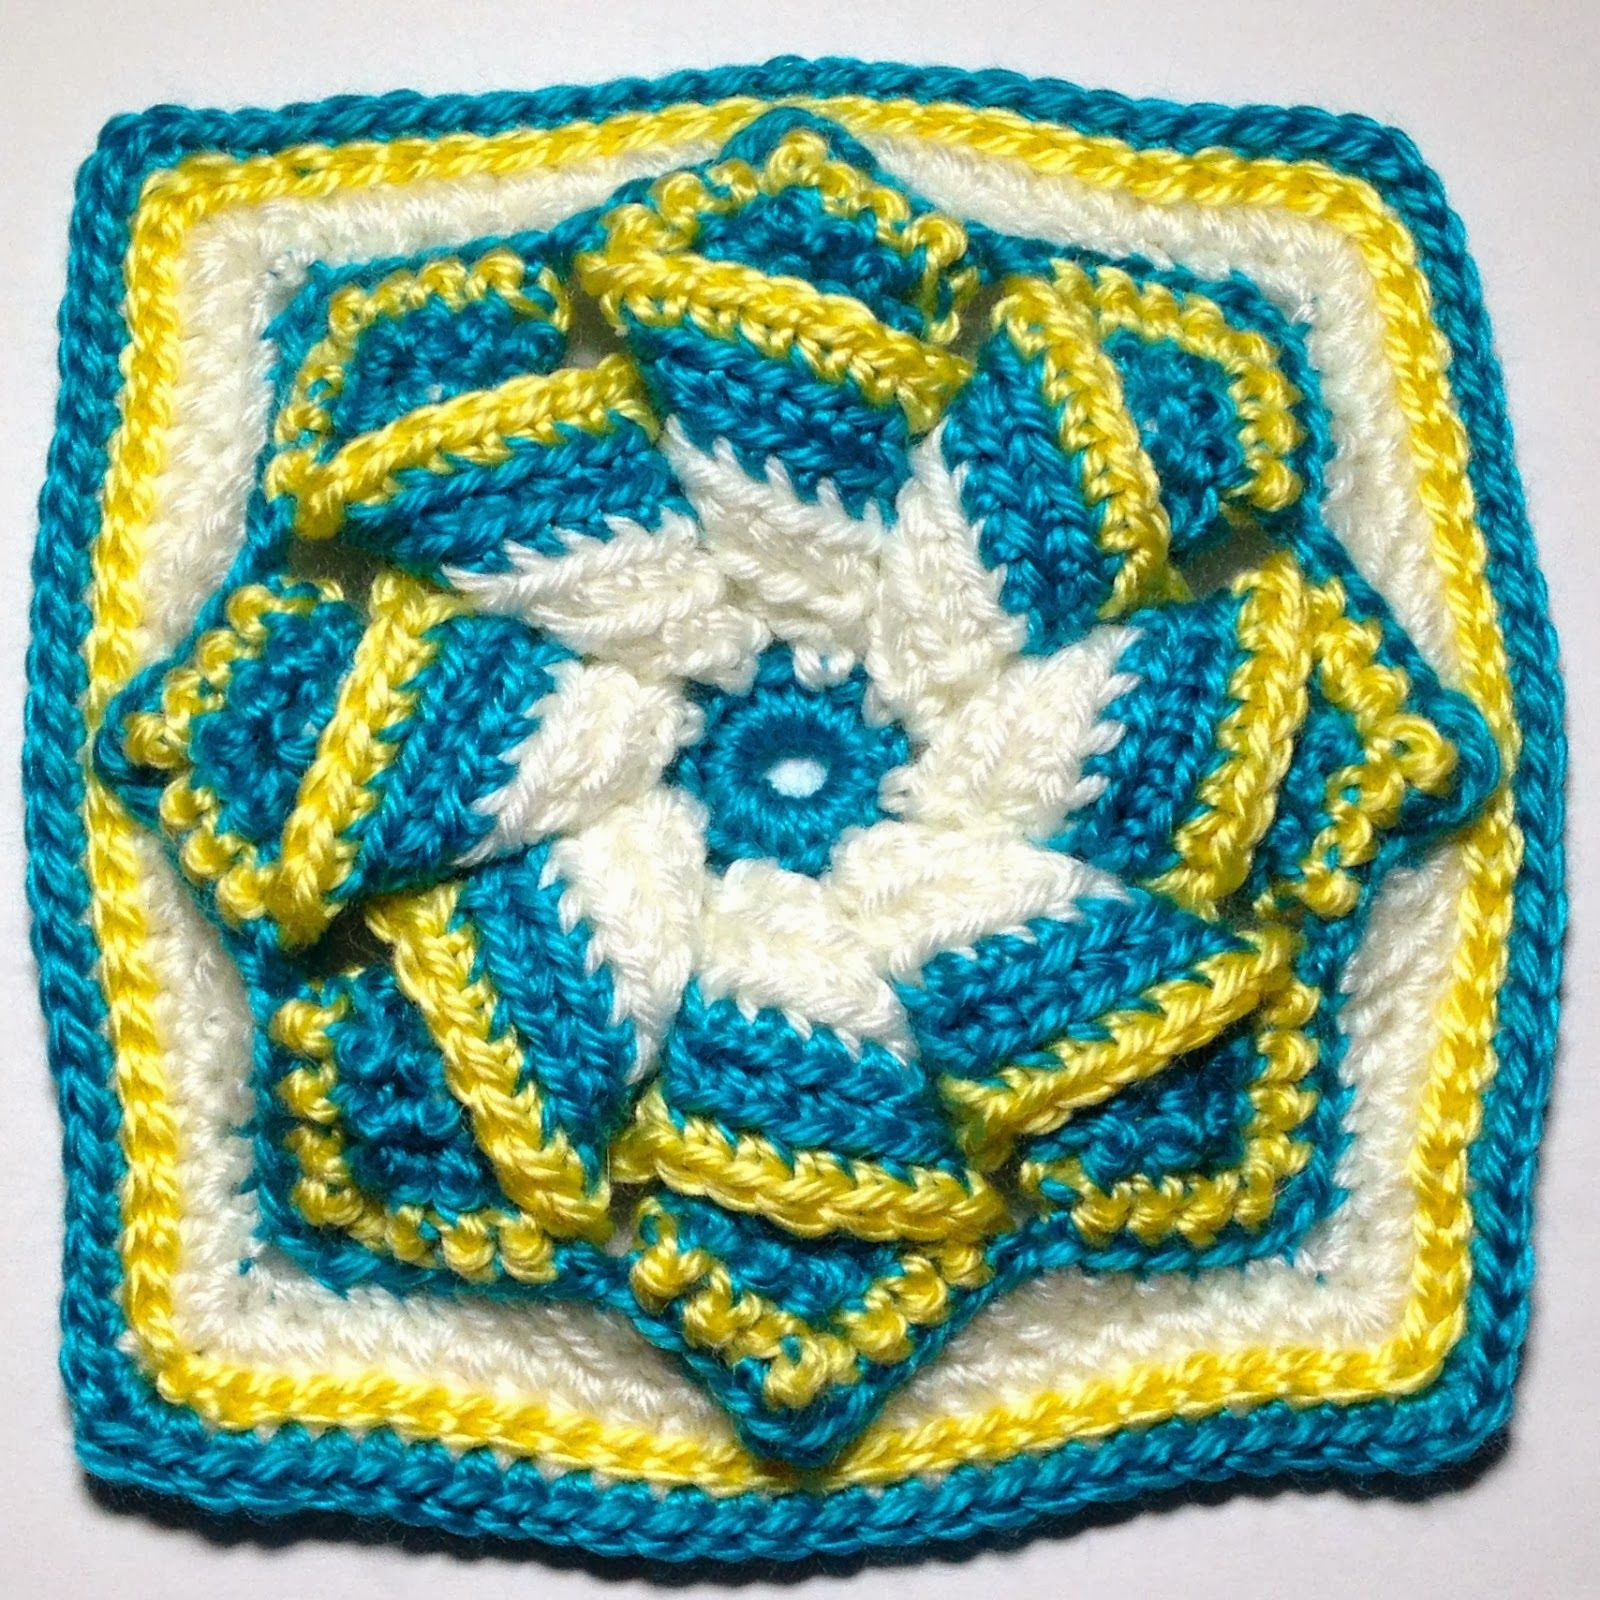 Free Crochet Patterns: Free Crochet Granny Square Motif Patterns ...